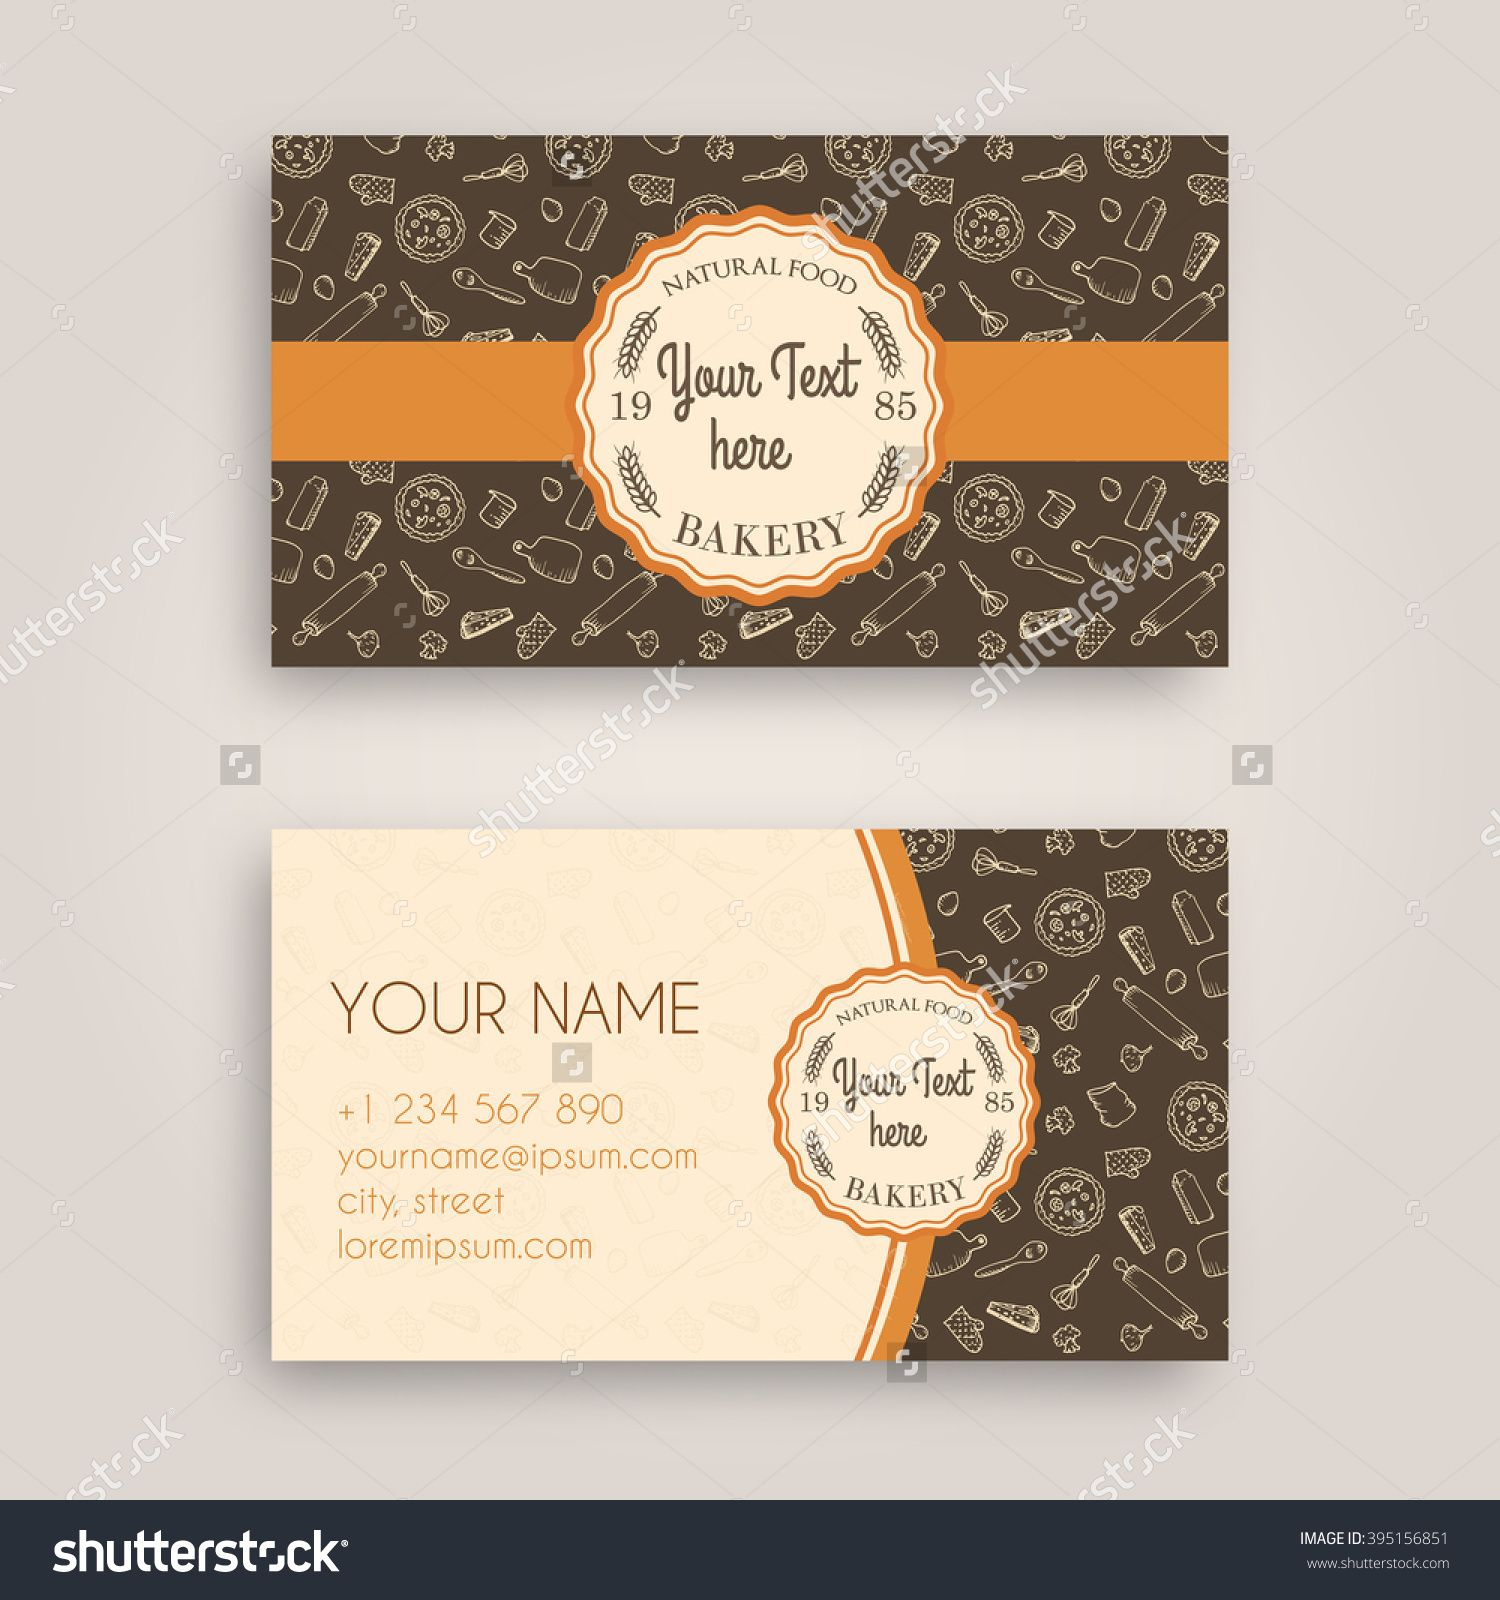 Vector Business Card Design Template With Doodle Bakery Hand Drawn Pattern And Vintage Vector Business Card Business Card Design Business Card Template Design